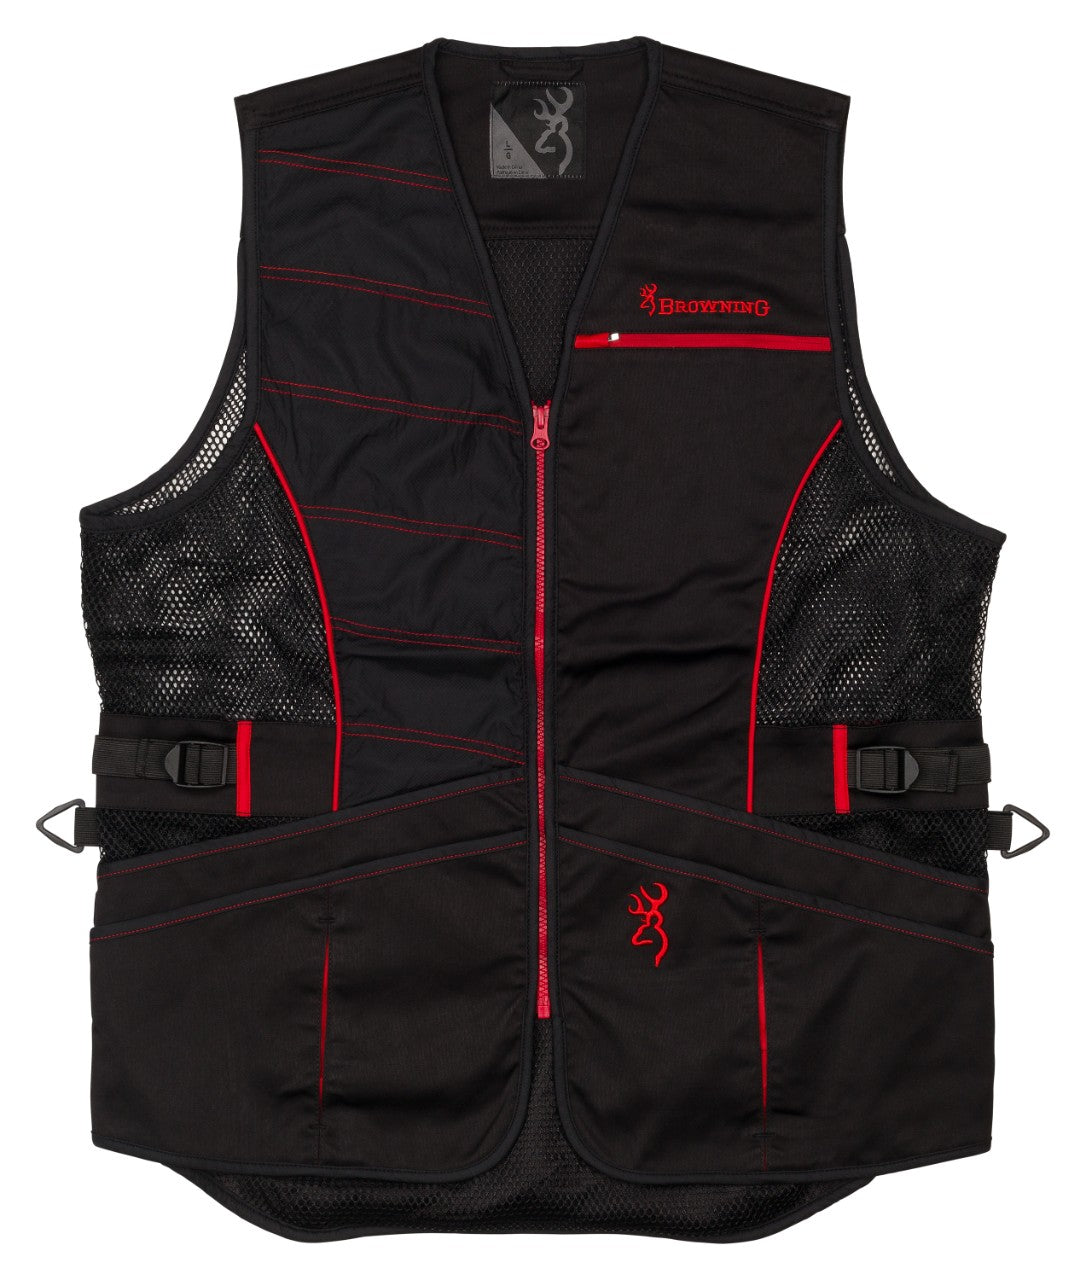 VST ACE SHOOTING BLACK/RED,XL